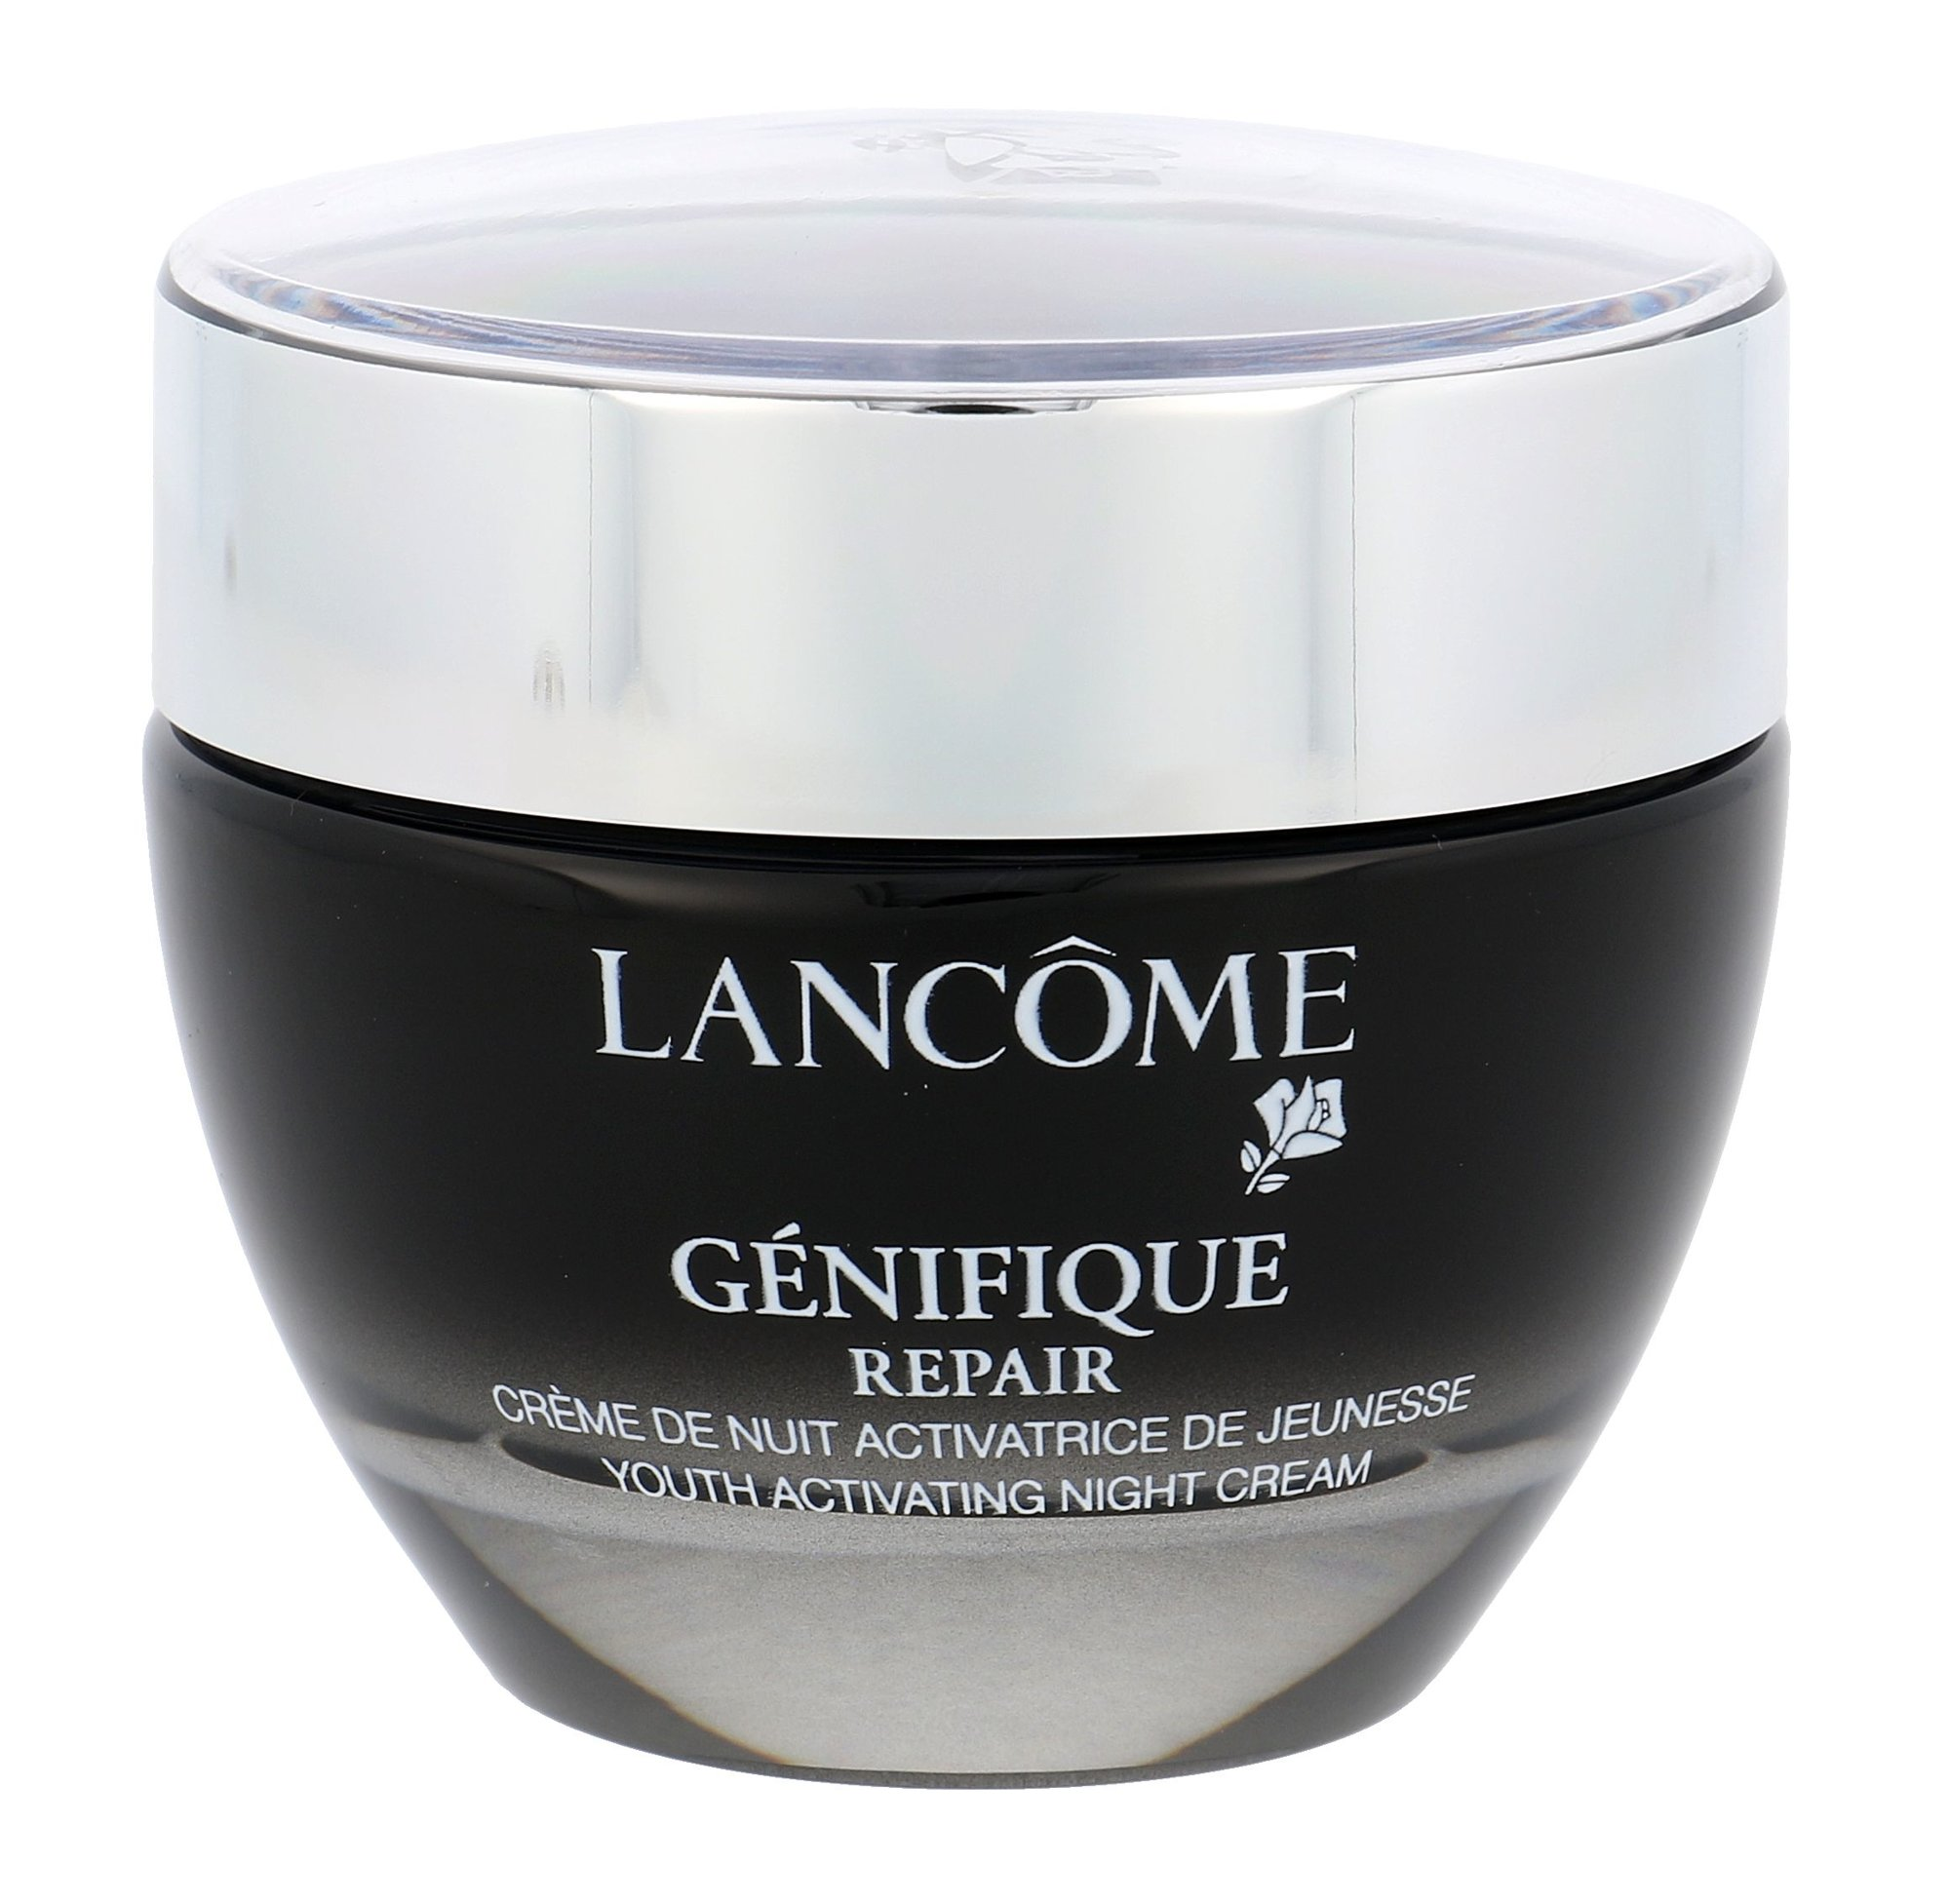 Lancôme Genifique Repair Cosmetic 50ml  Youth Activating